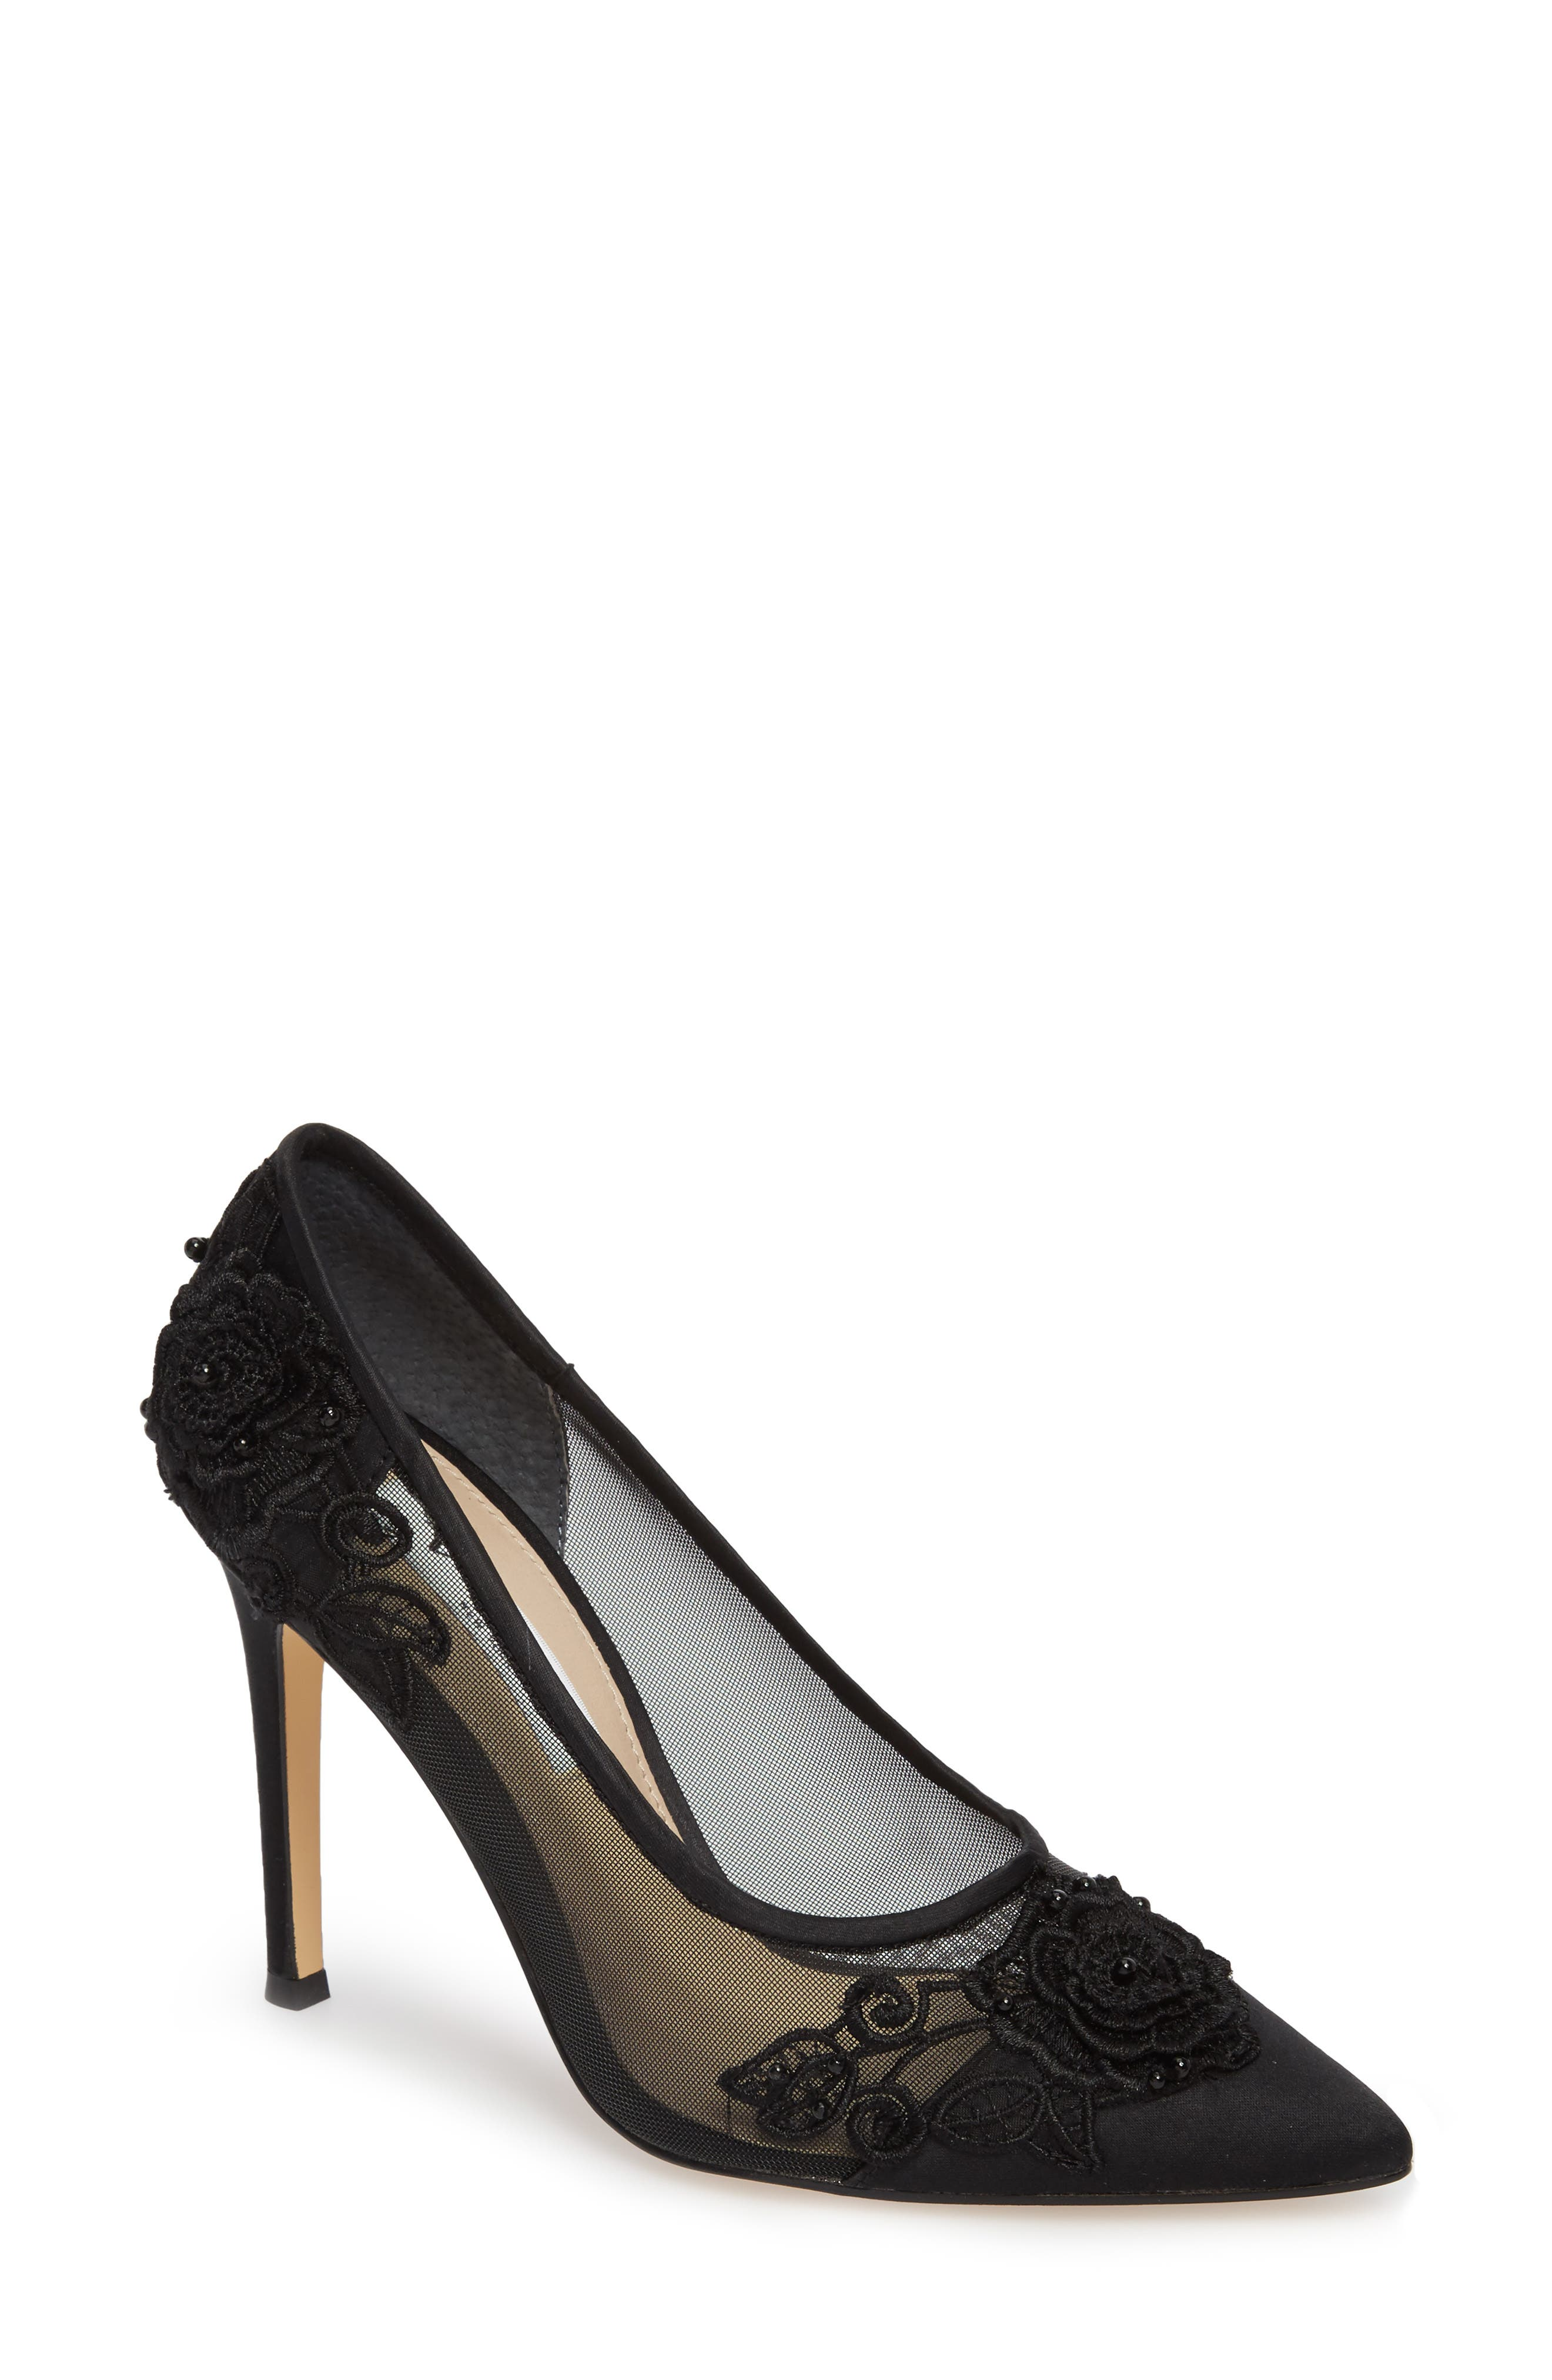 Donela Pump,                             Main thumbnail 1, color,                             Black Satin